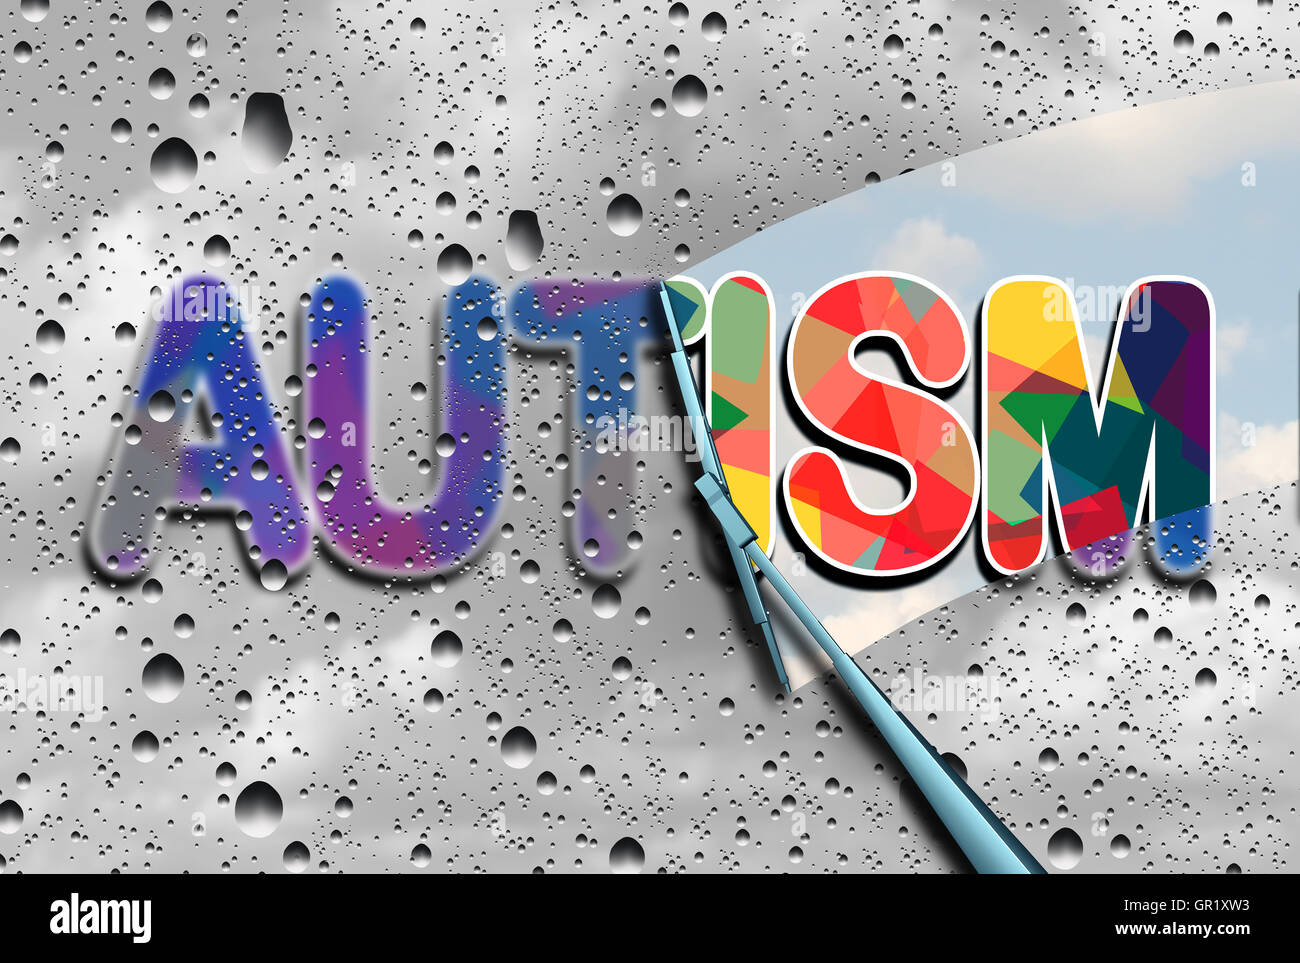 Autism awareness and autistic disorders concept as cloudy blurred text with a wiper clearing the confusion exposing - Stock Image